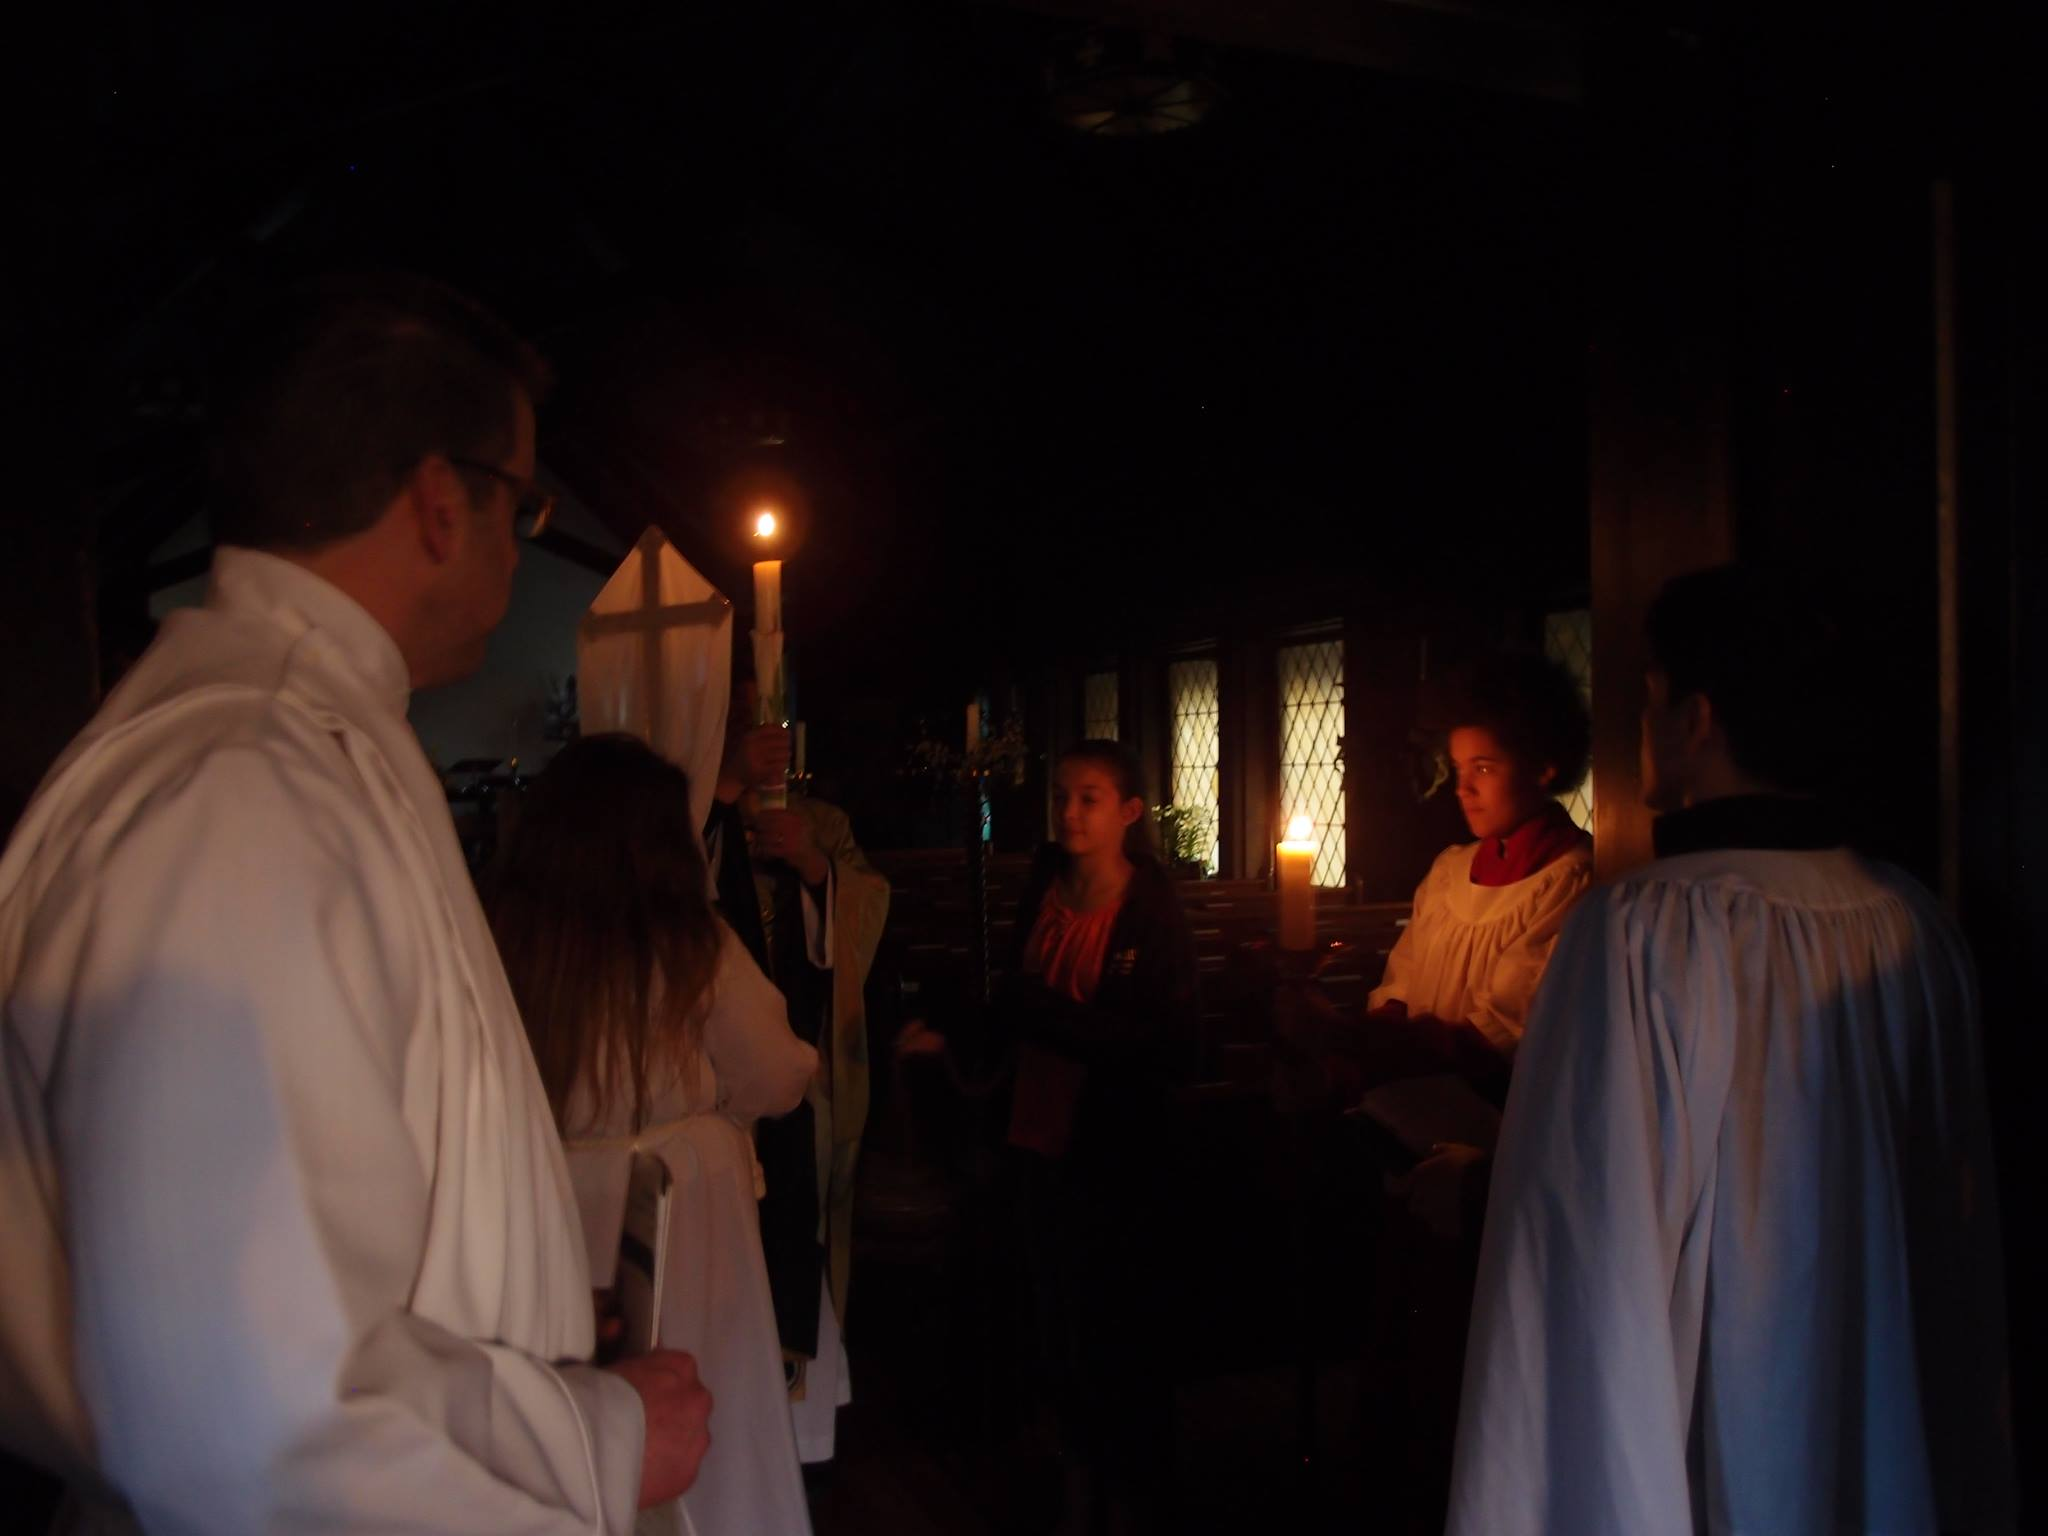 Service in darkened church